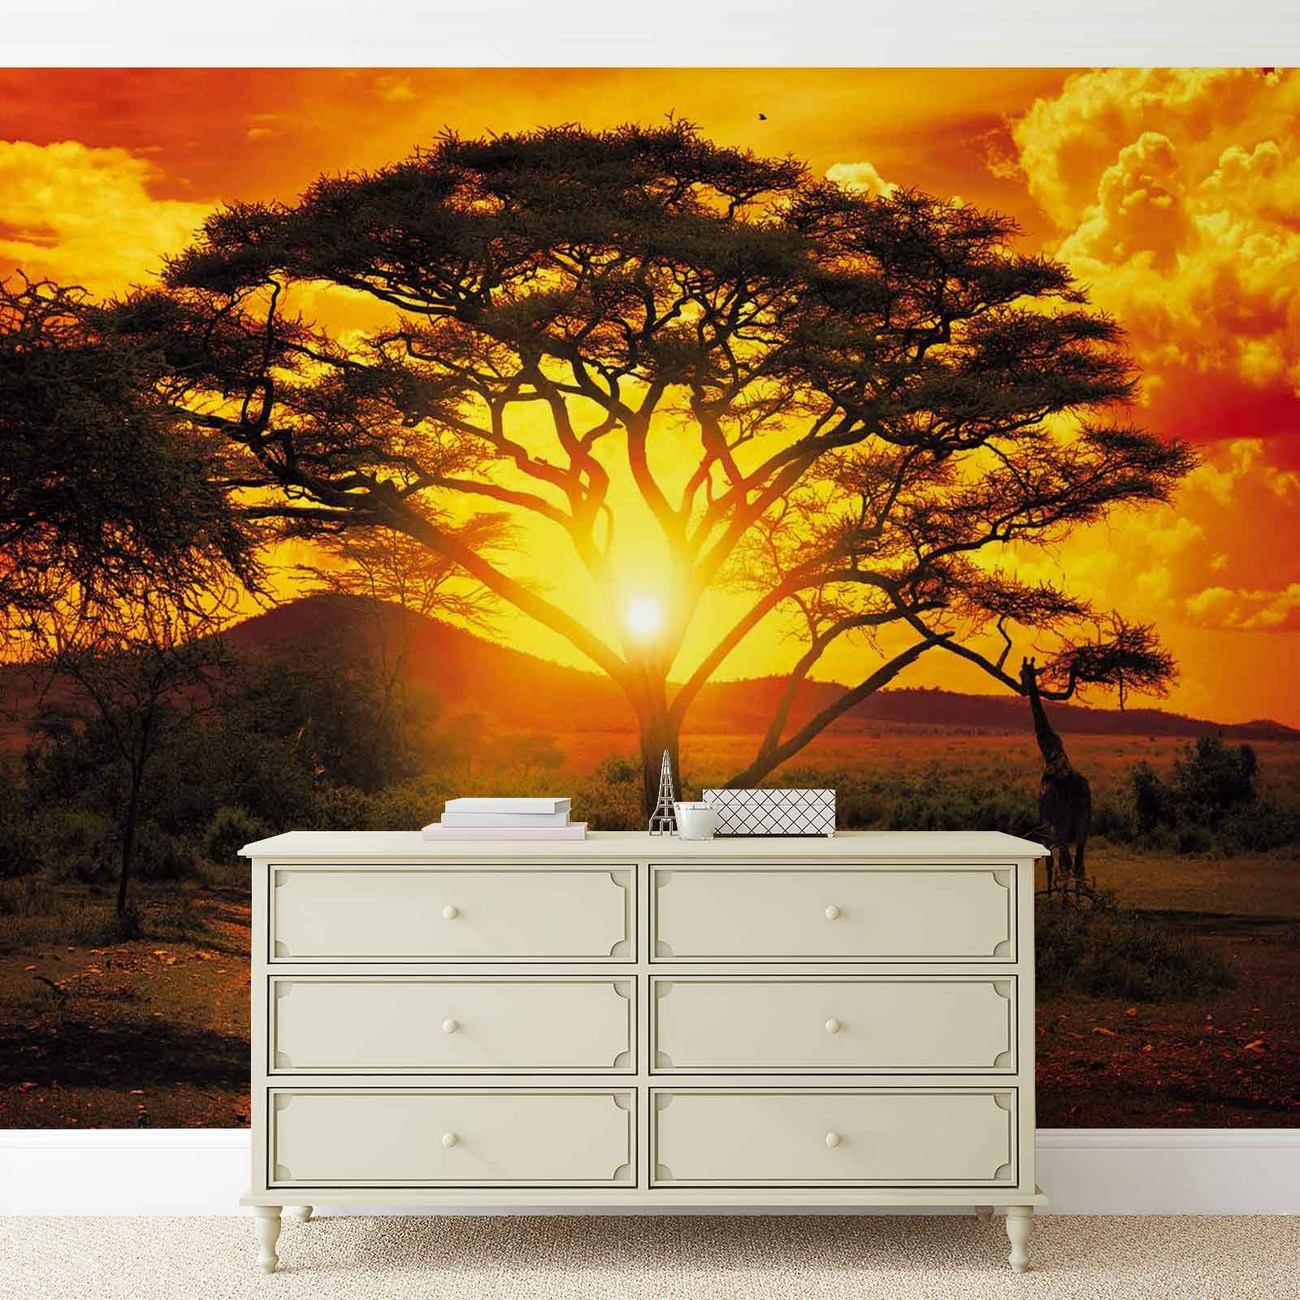 fototapete tapete sonnenuntergang afrika natur baum bei europosters kostenloser versand. Black Bedroom Furniture Sets. Home Design Ideas